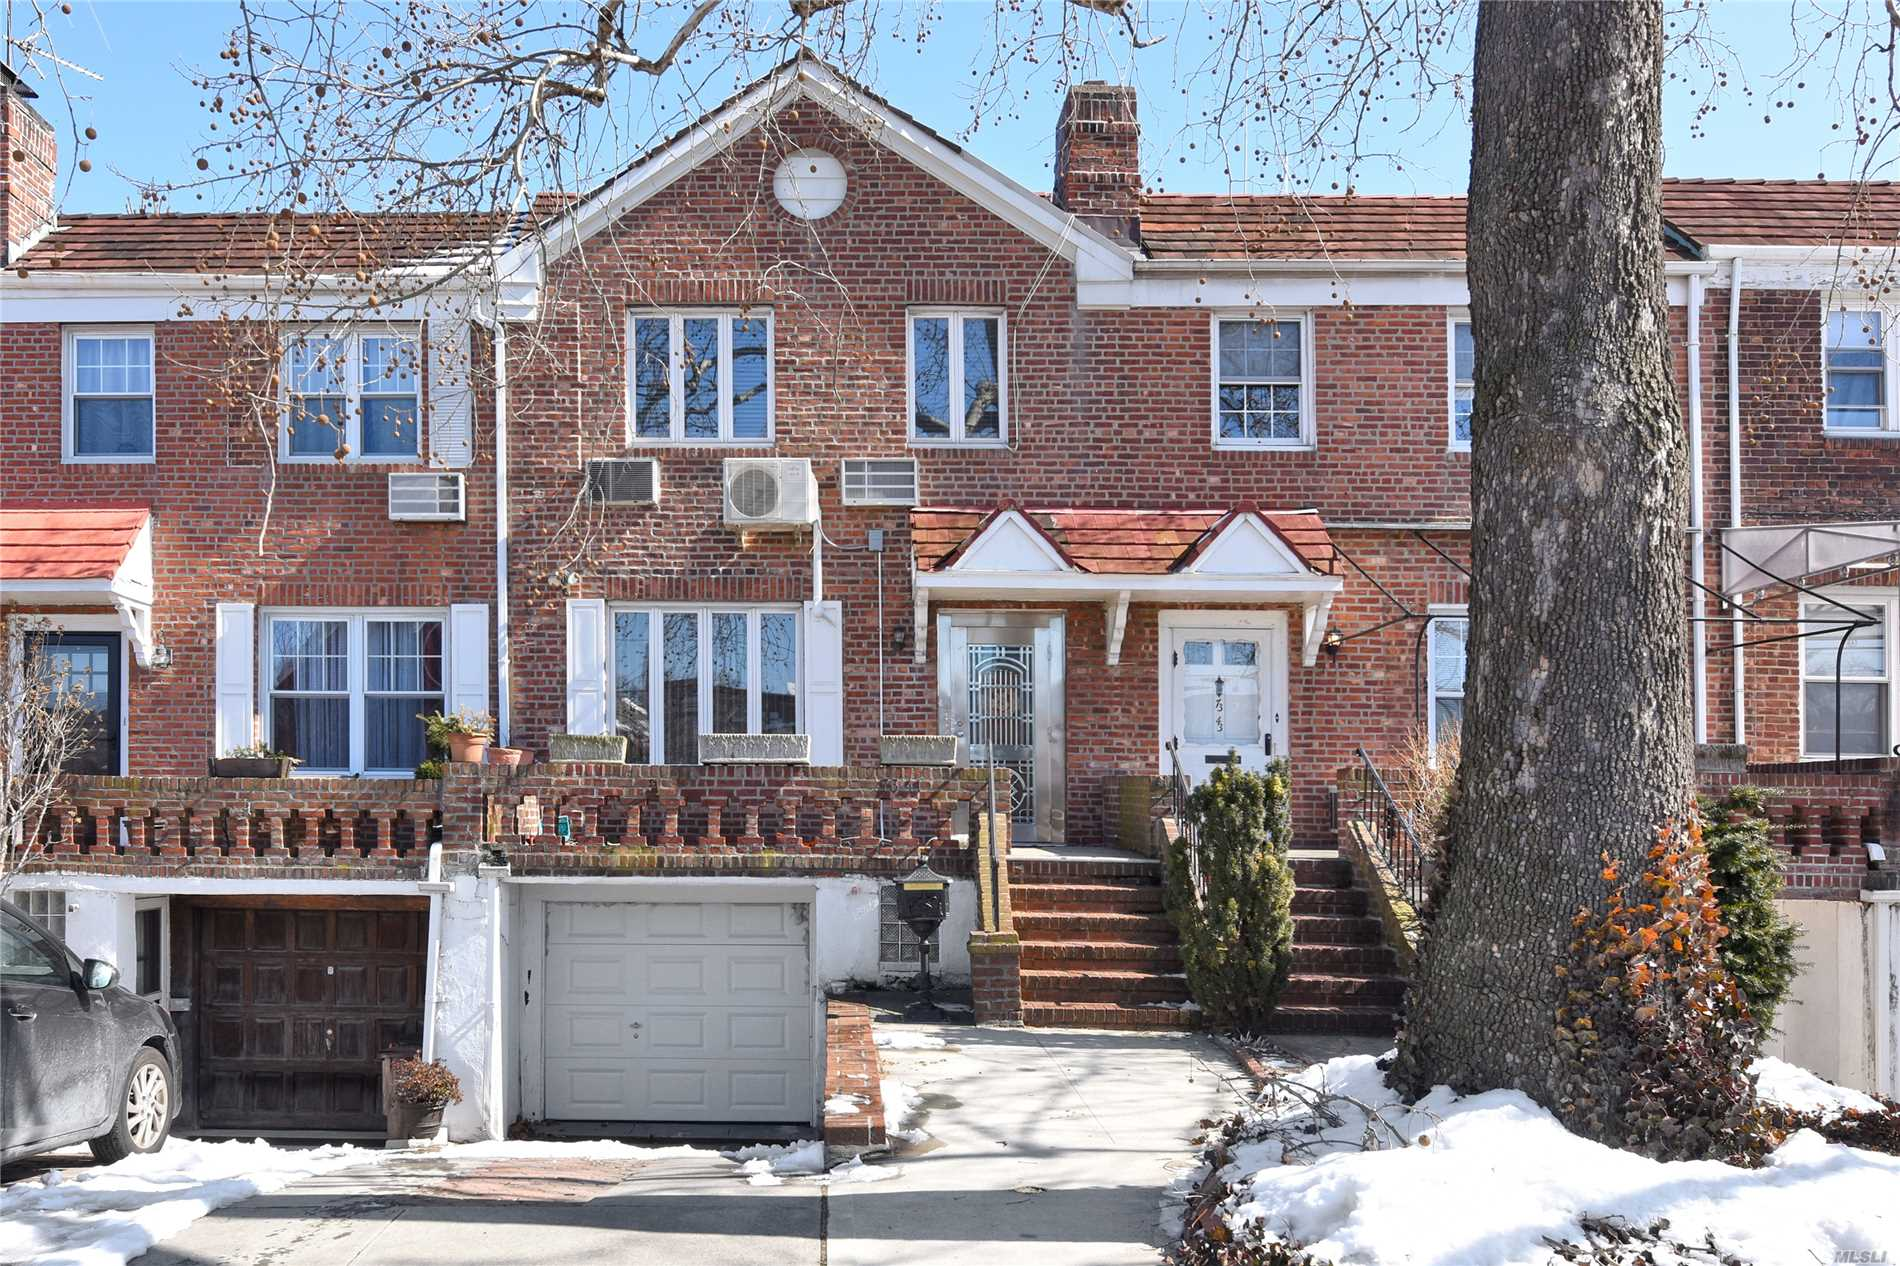 Beautiful Single Family House In the Heart of Fresh Meadows. Fully Renovated From Top To Bottom. 4 Bedrooms, 3 Full Baths. Fully Finished Basement With Separate Entrance. Private Driveway With Garage. Backyard. Closed To All Transportation And Shopping.